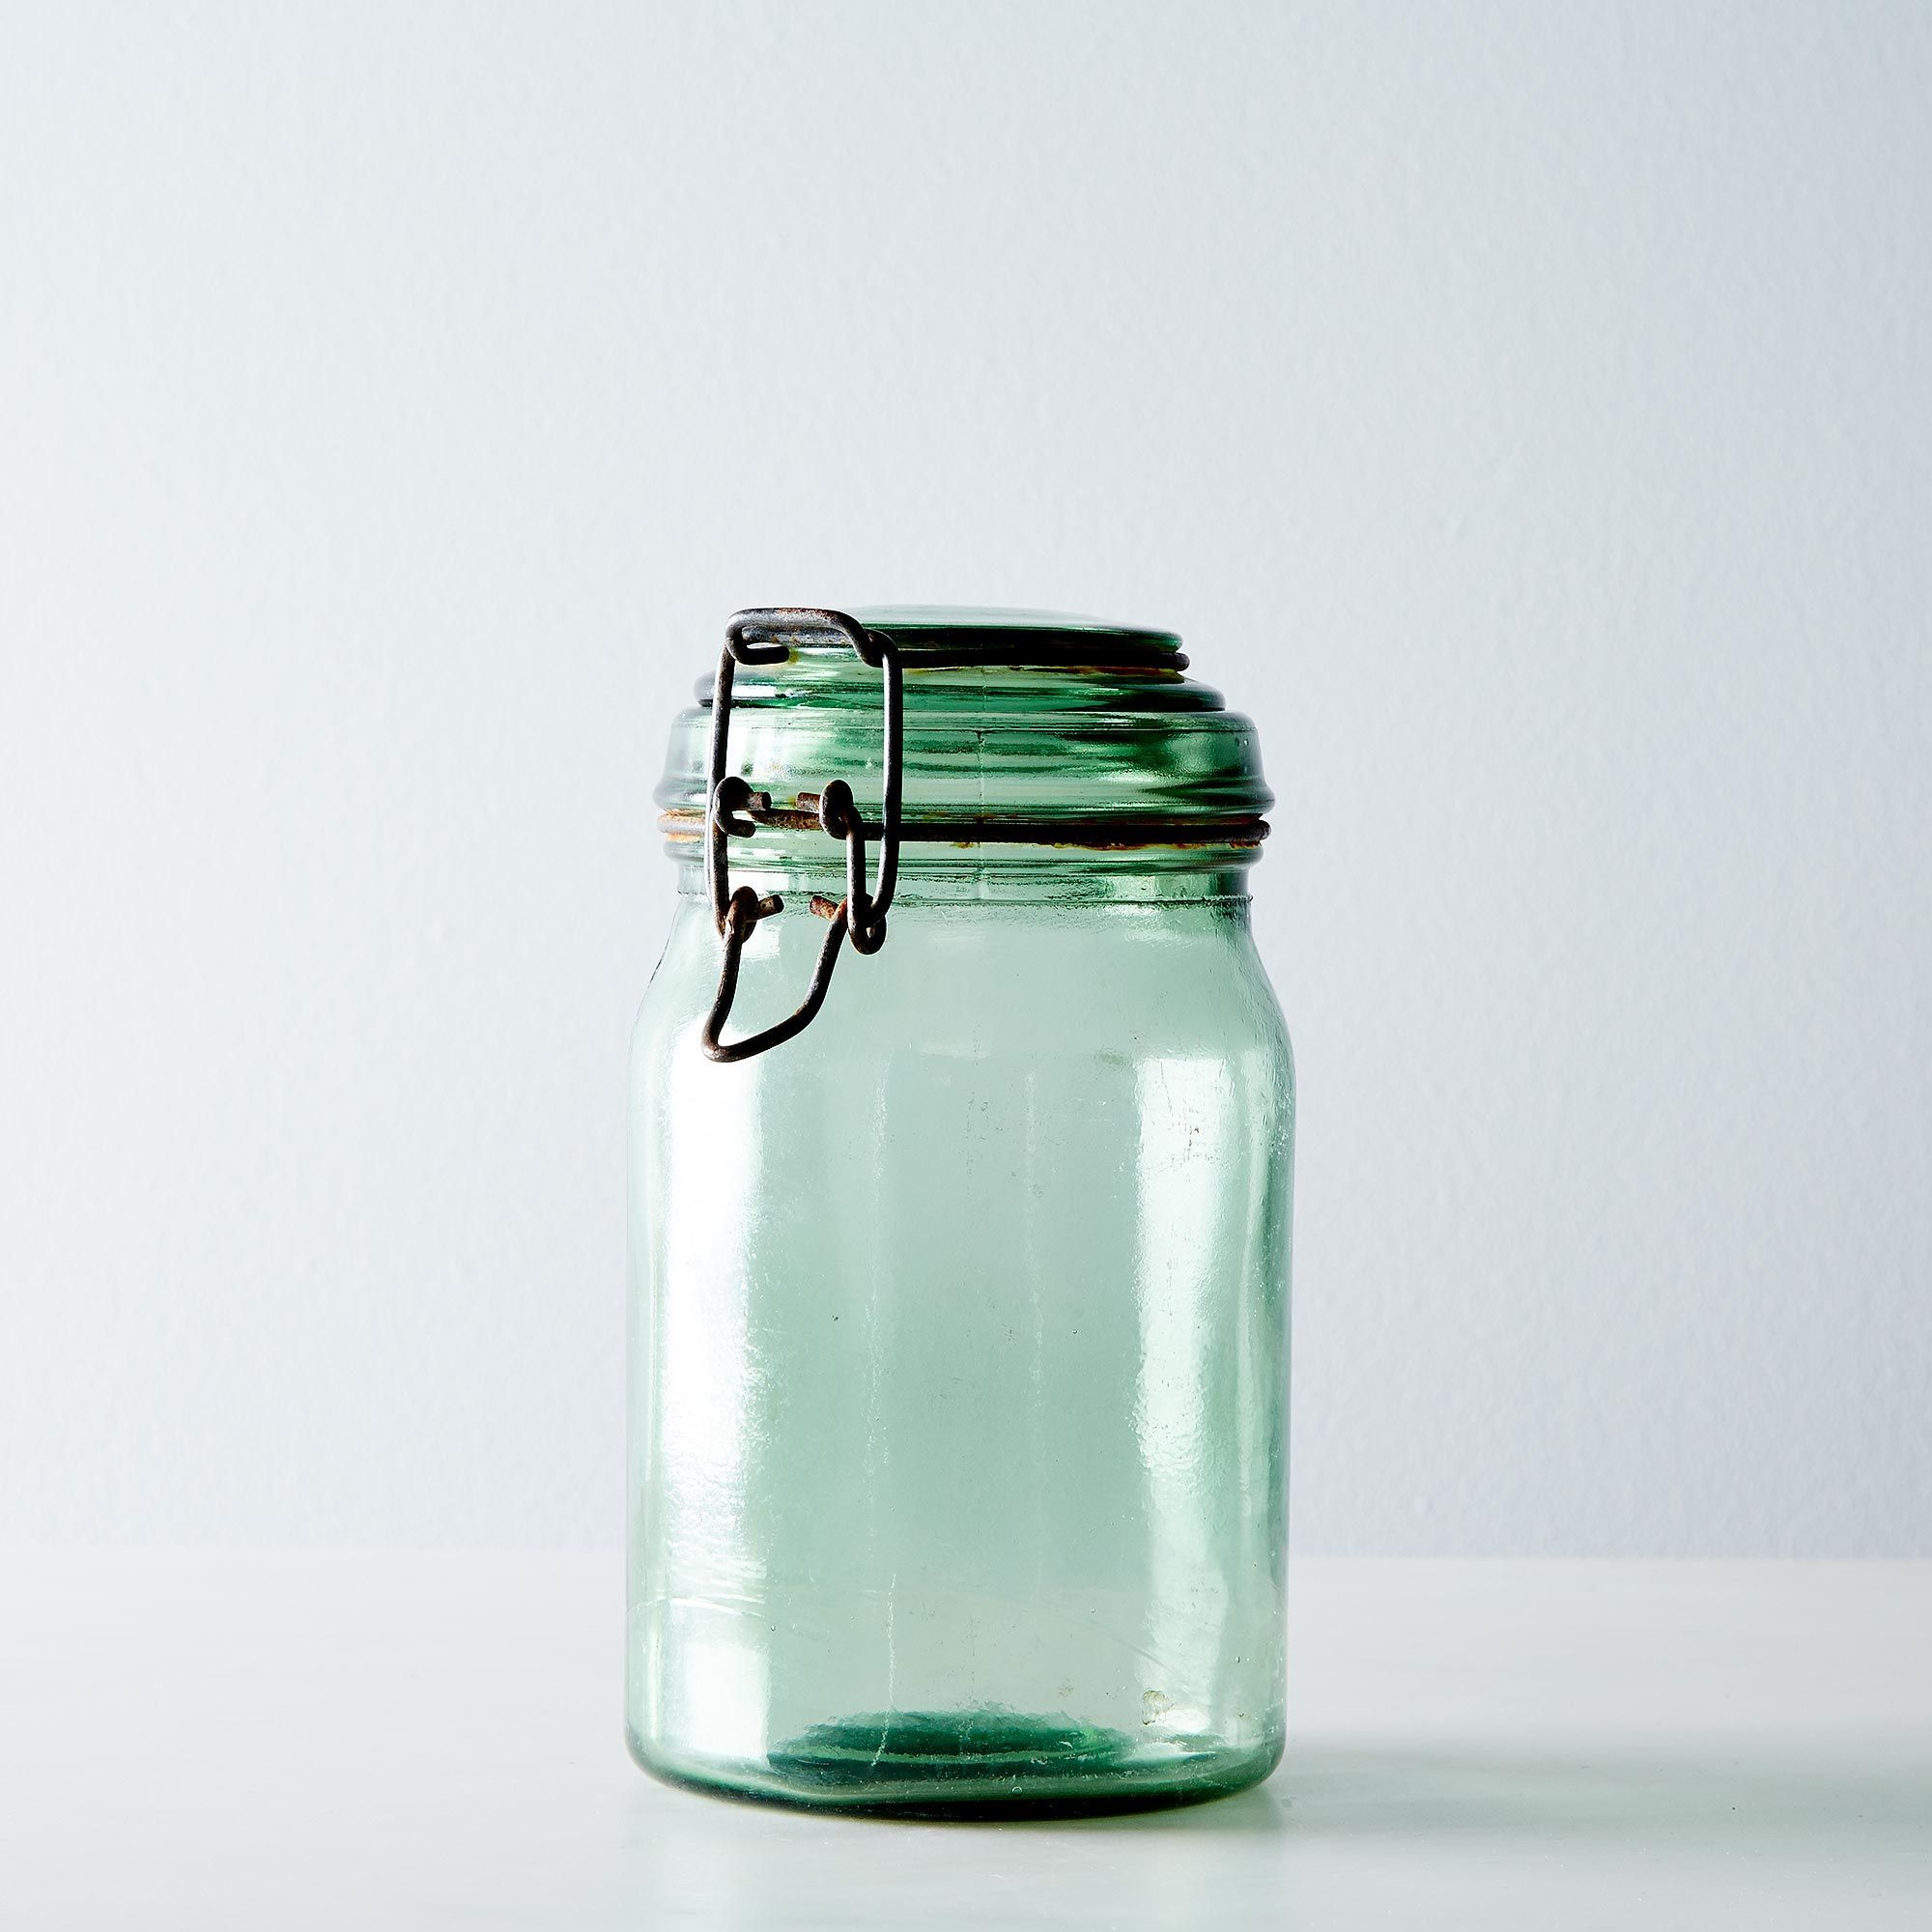 8cd4654f-8bc5-4aa1-9daa-c6052b4f9a6d--2014-1002_elsie-green-designs_vintage-french-canning-jars-014.jpg